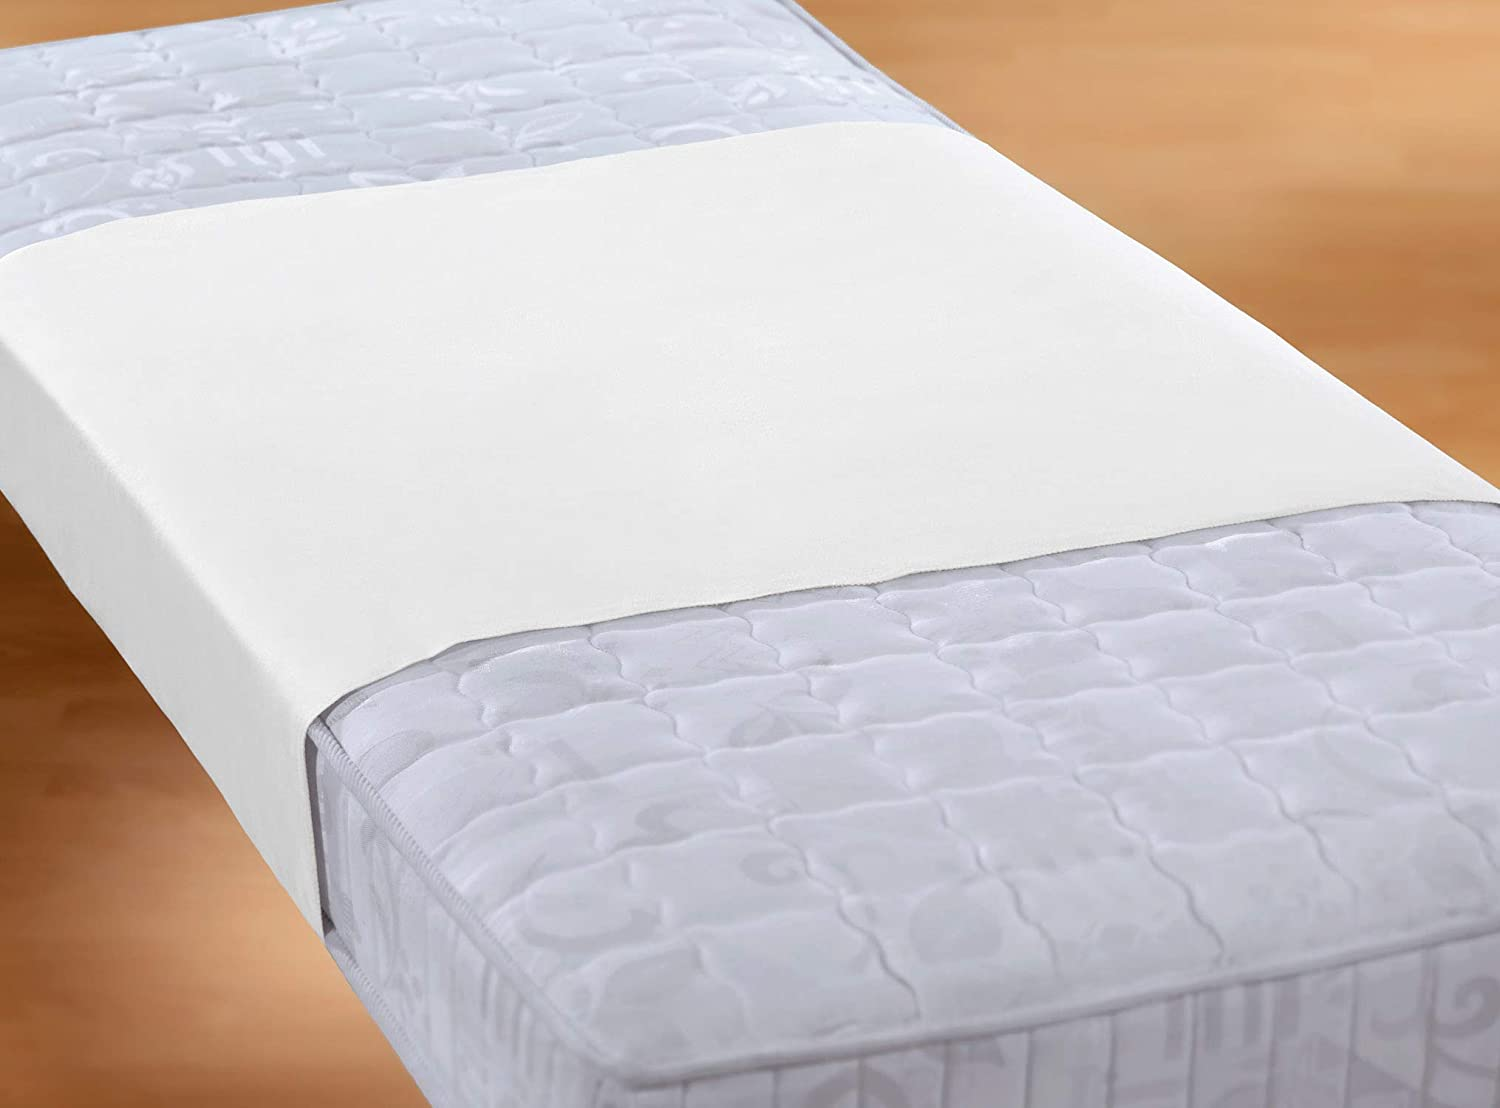 24 Bedding Waterproof Fitted Sheet Fitted Sheet Molton 70 x 200 cm